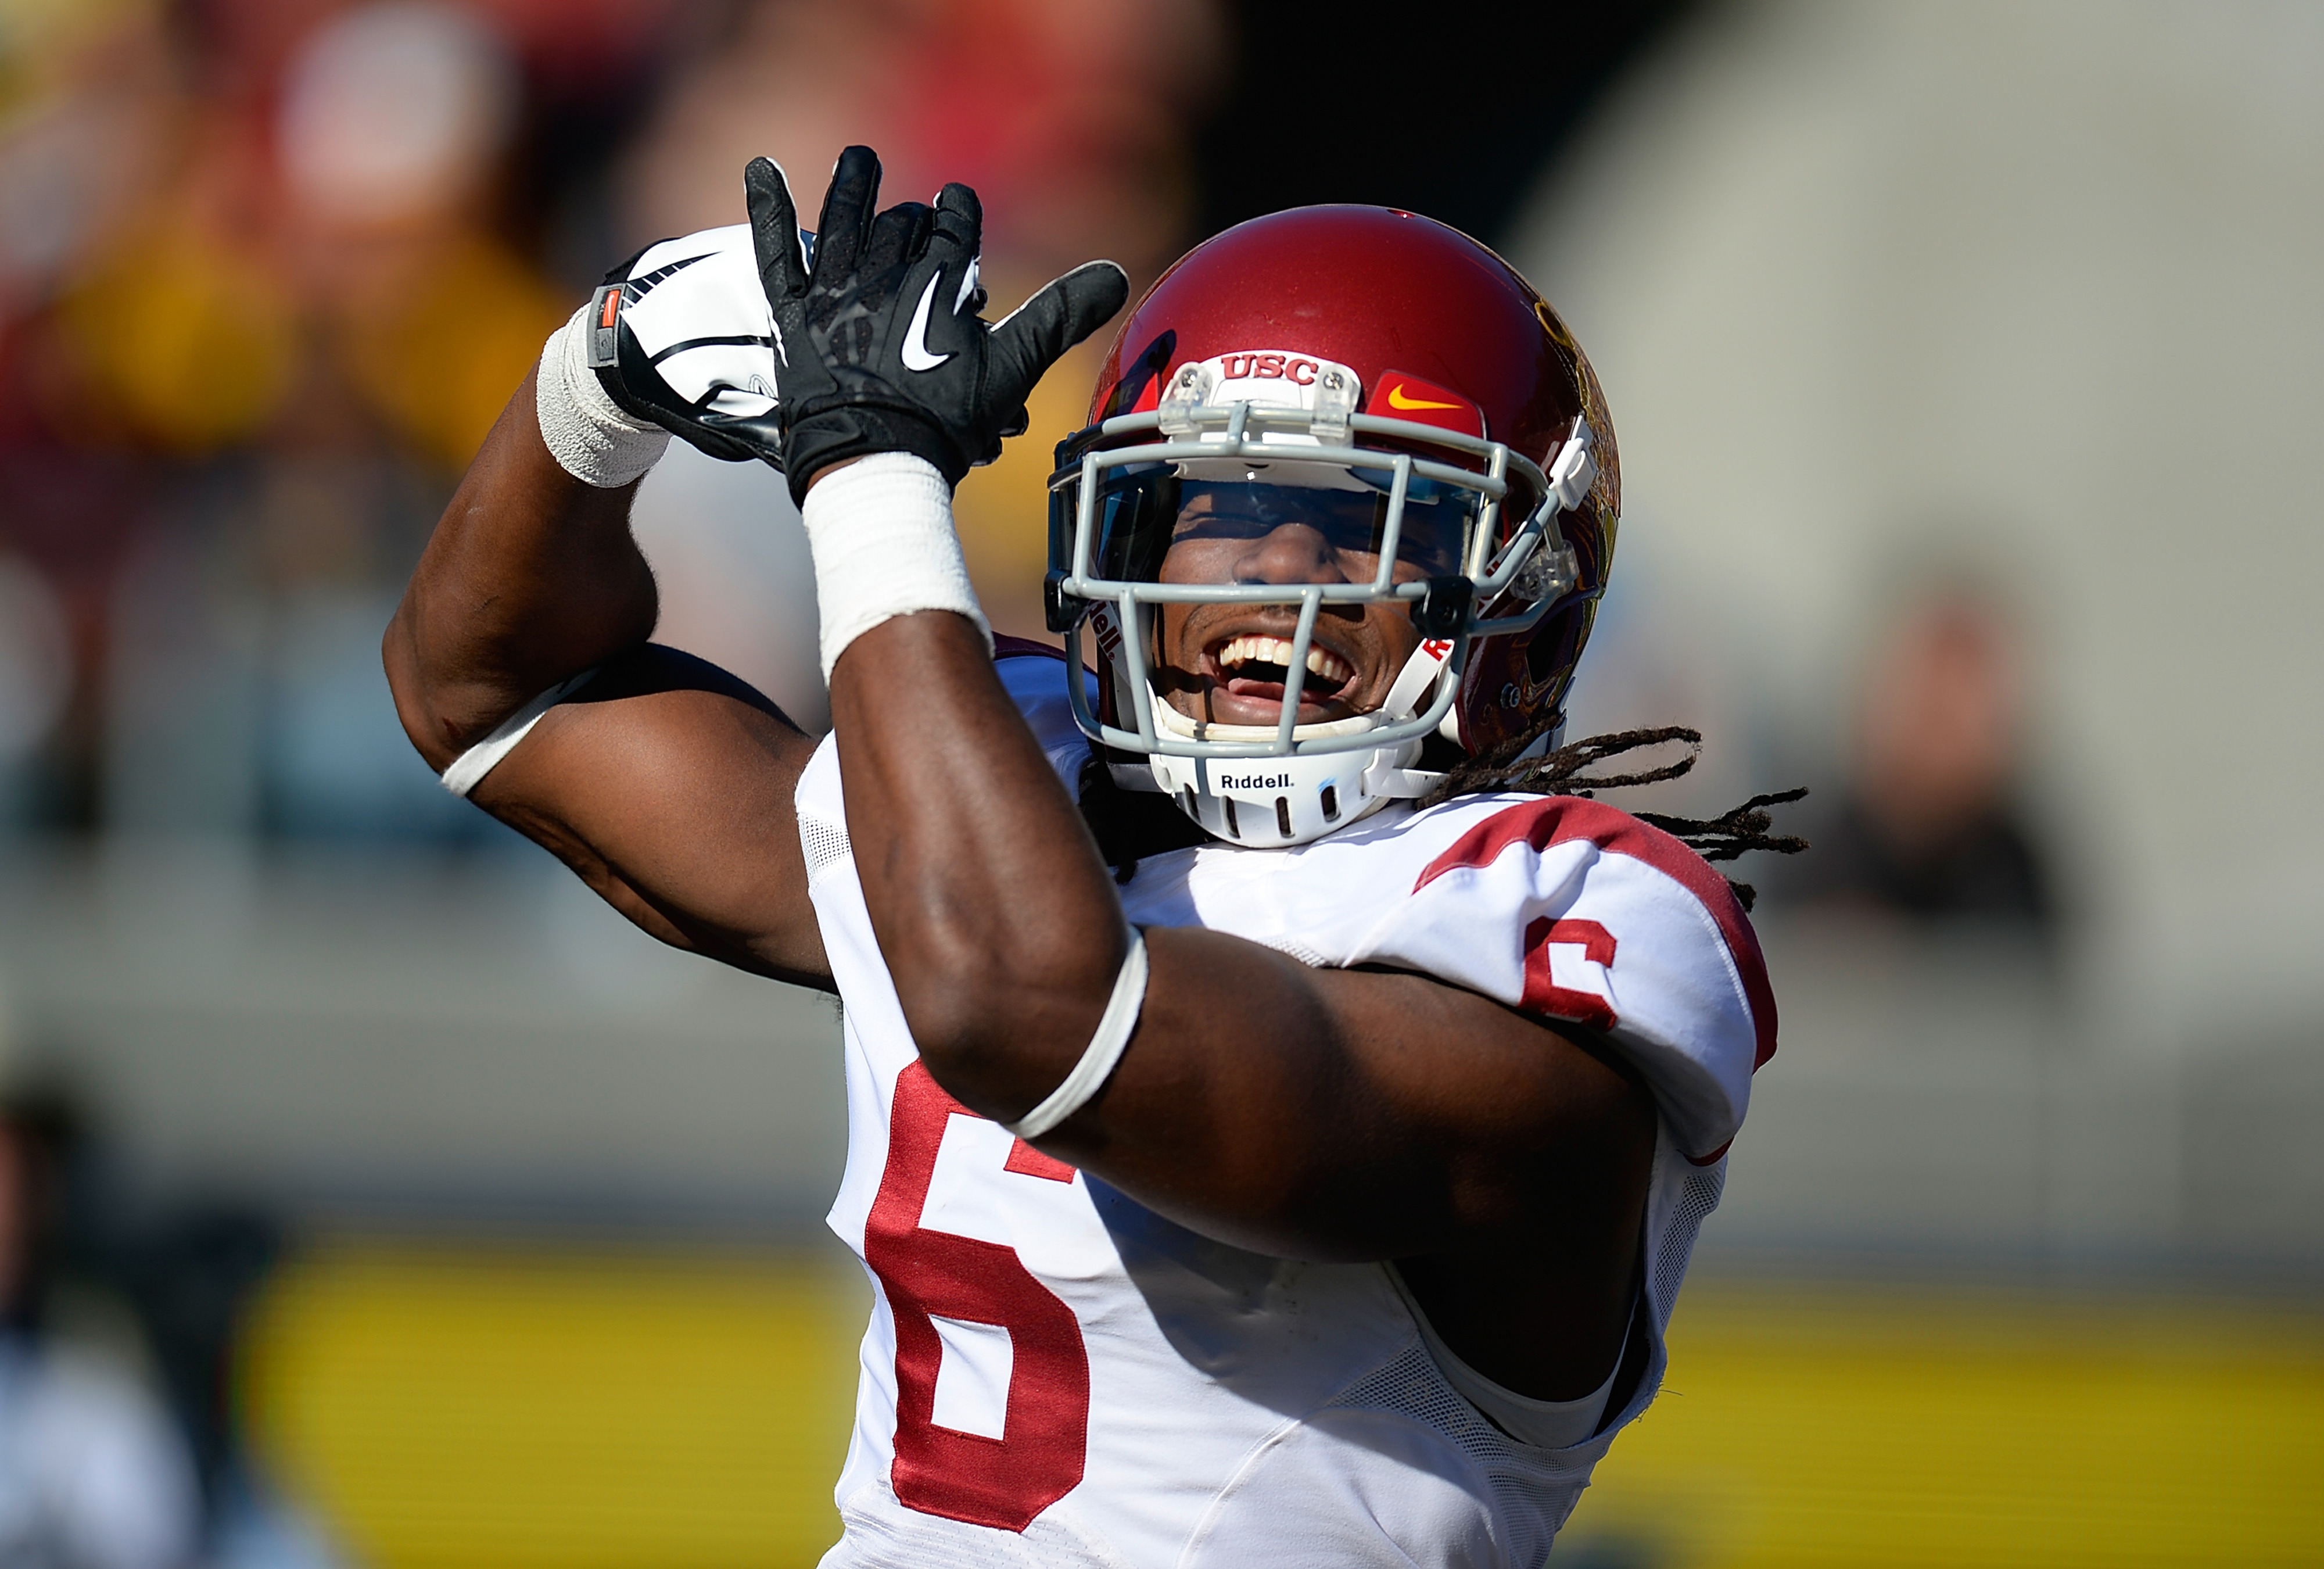 USC misplayed the Josh Shaw lie, but he's the only one paying for it